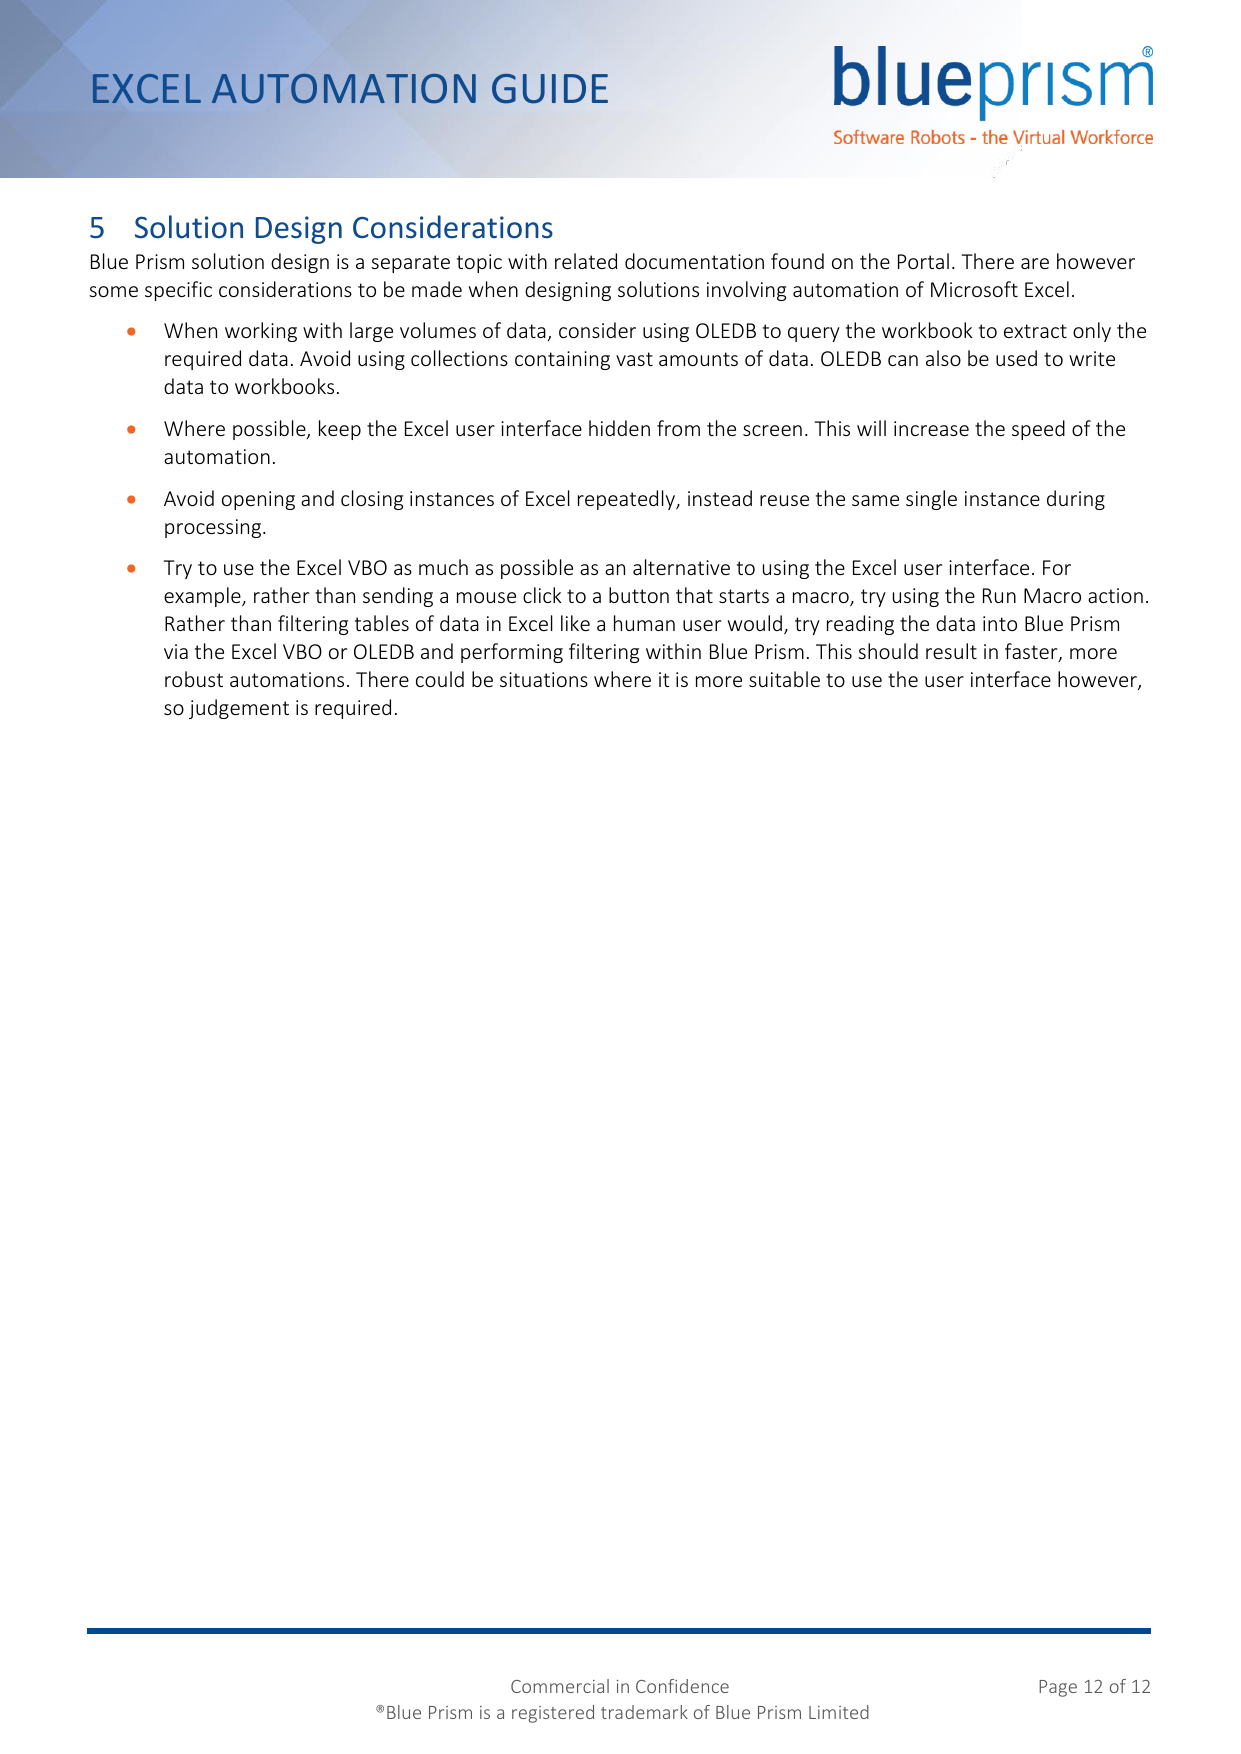 Page 12 of 12 - Blue Prism Excel Automation Guide